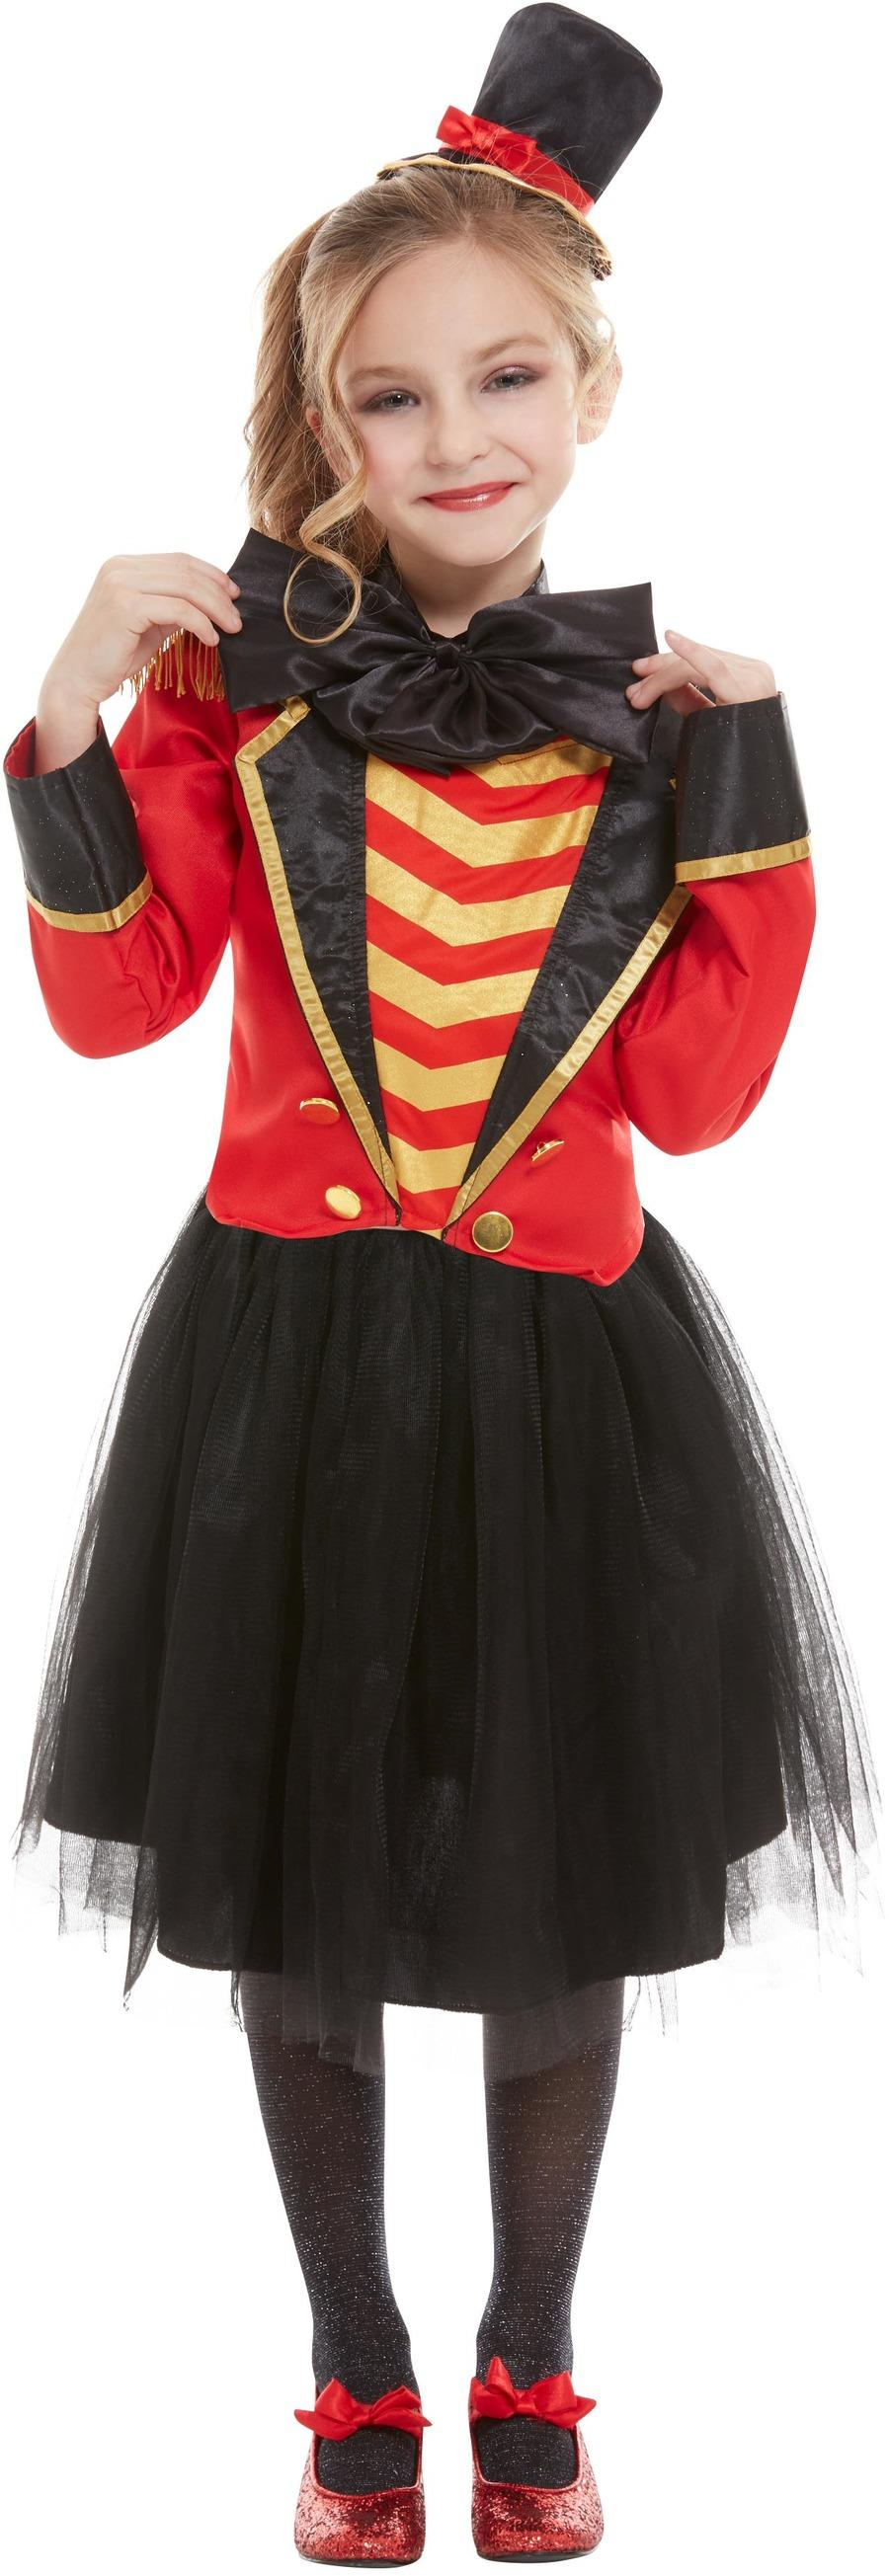 Kids Ringmaster Girl Costume